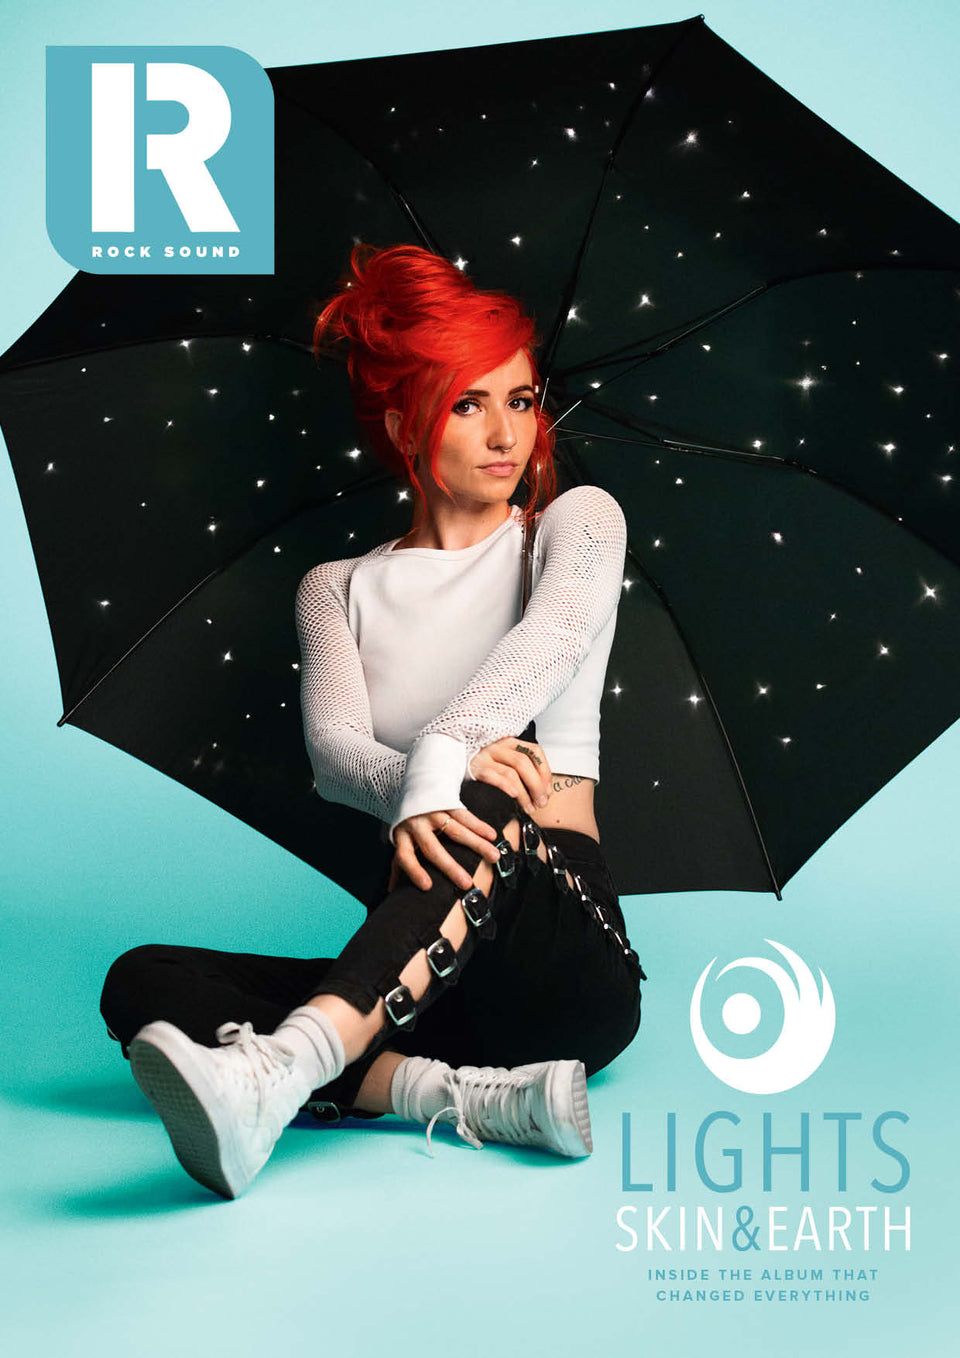 Rock Sound Issue 254 - Lights - Rock Sound Shop